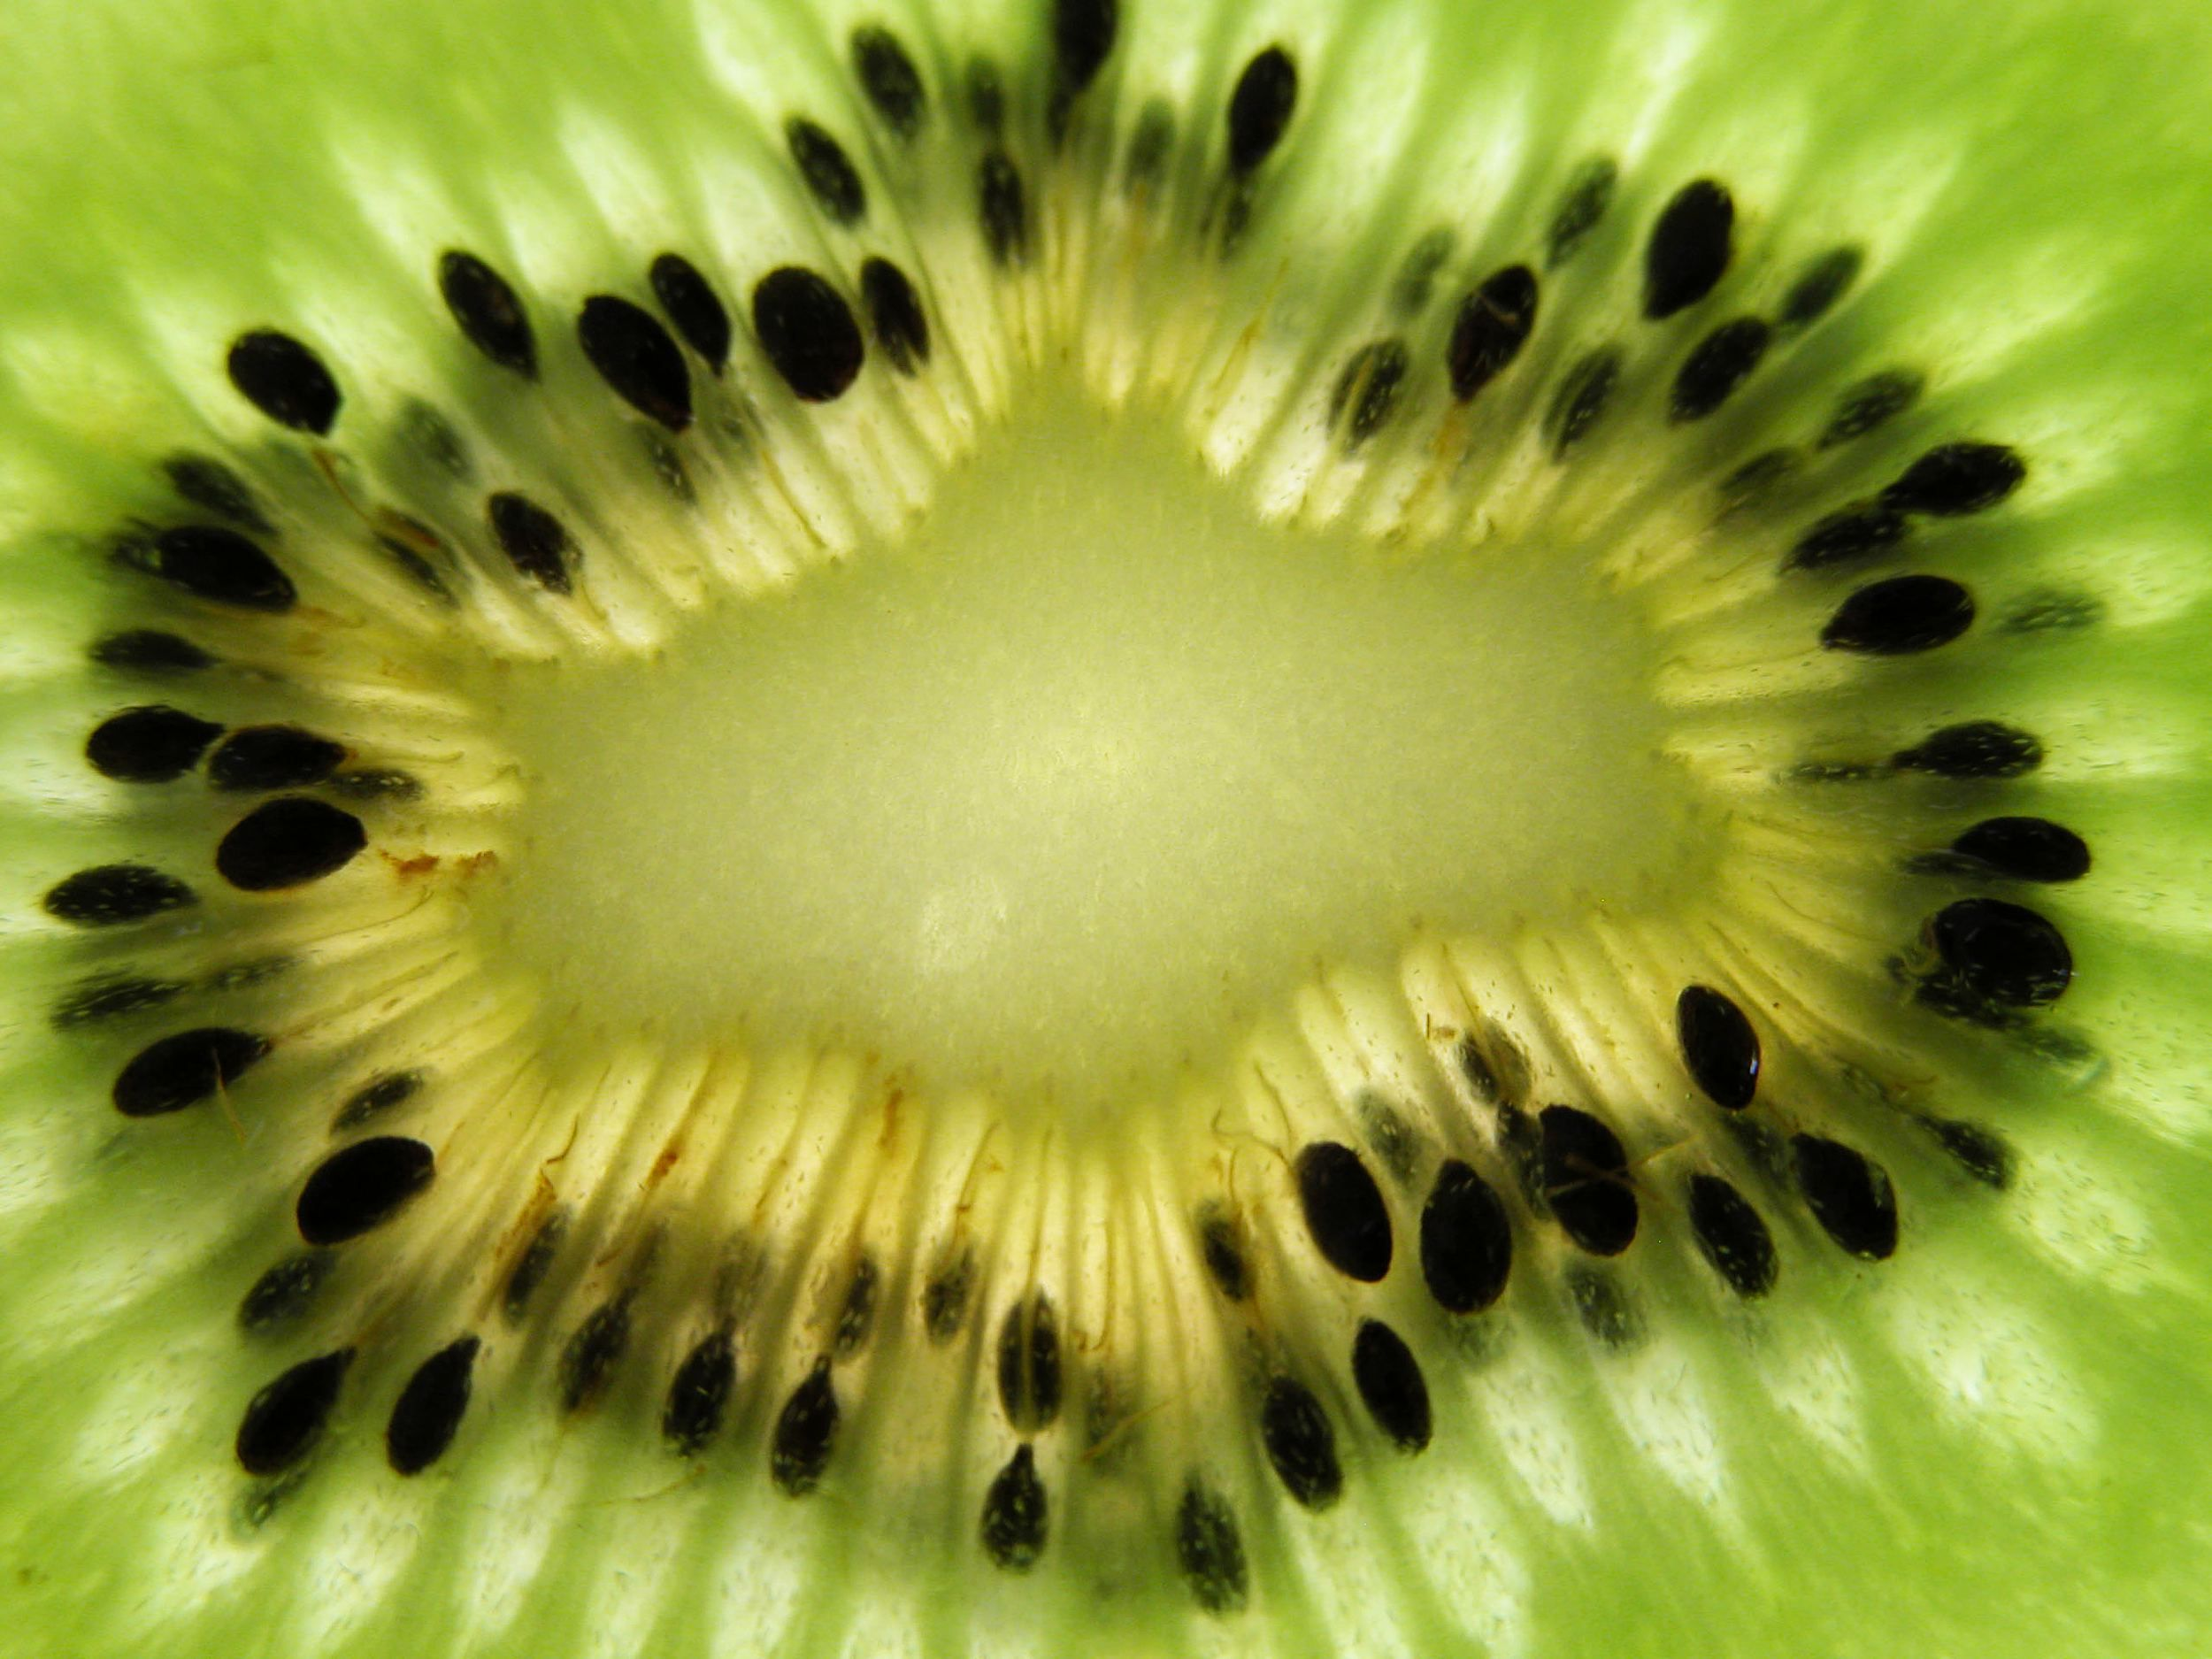 Inside Kiwi Fruit Wallpaper And Photo Download By PHOTOSof ...